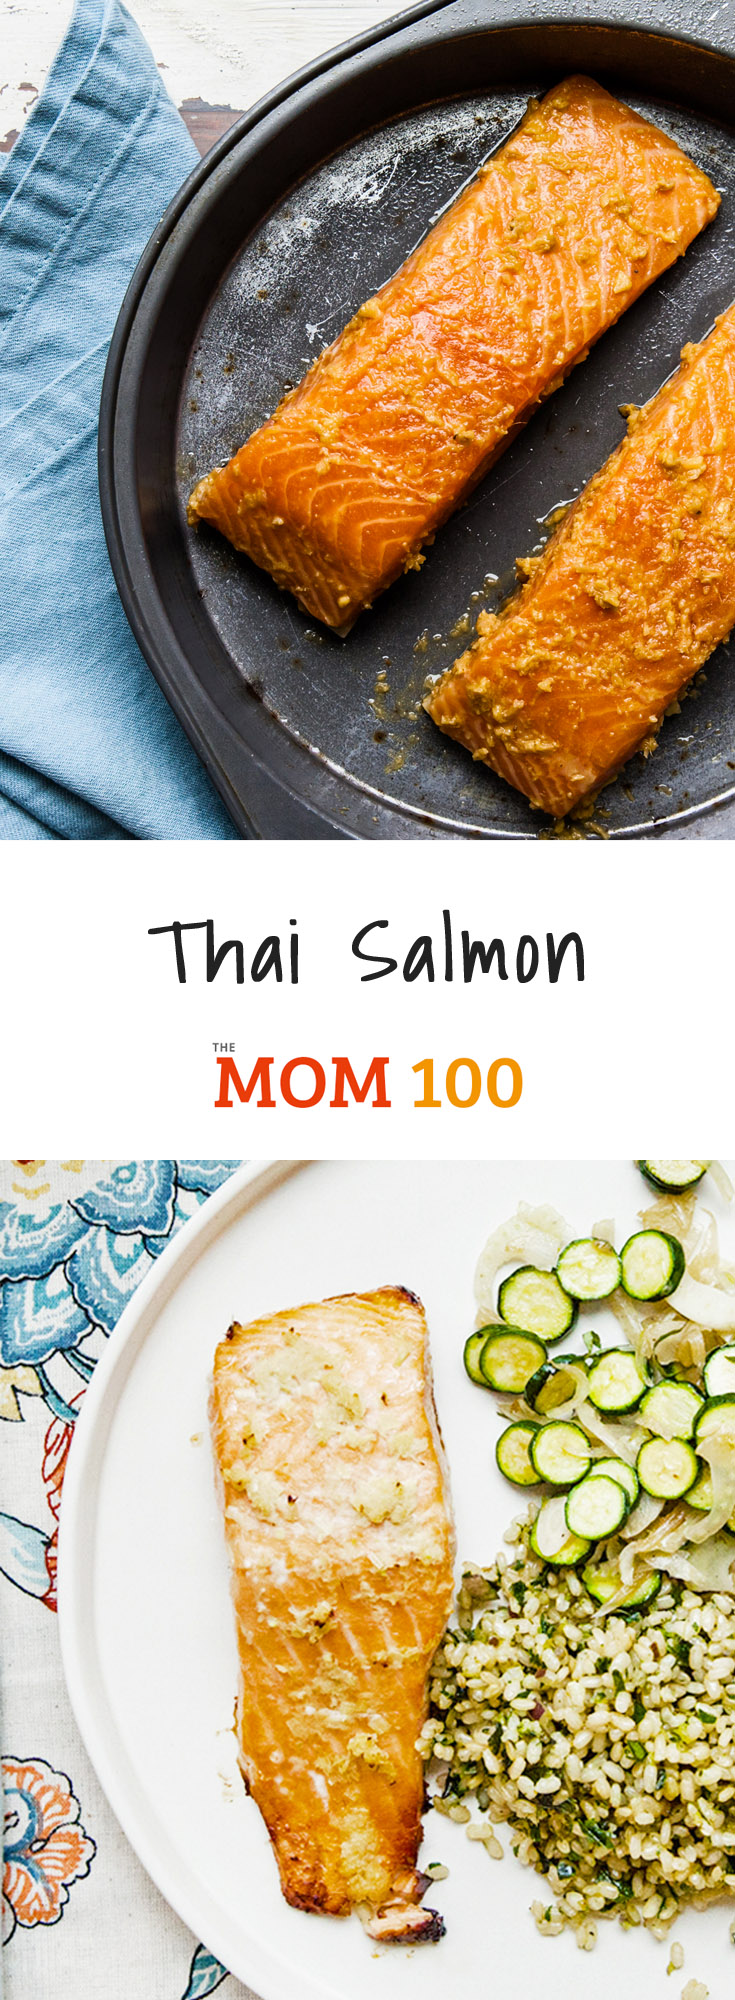 This Thai Salmon is just a simple combo of classic Thai ingredients, poured over some salmon filets. The marinade turns into a beautiful glaze. It\'s one of those dishes that you Just. Can\'t. Stop. Eating. (But doesn\'t leave you overly full.)